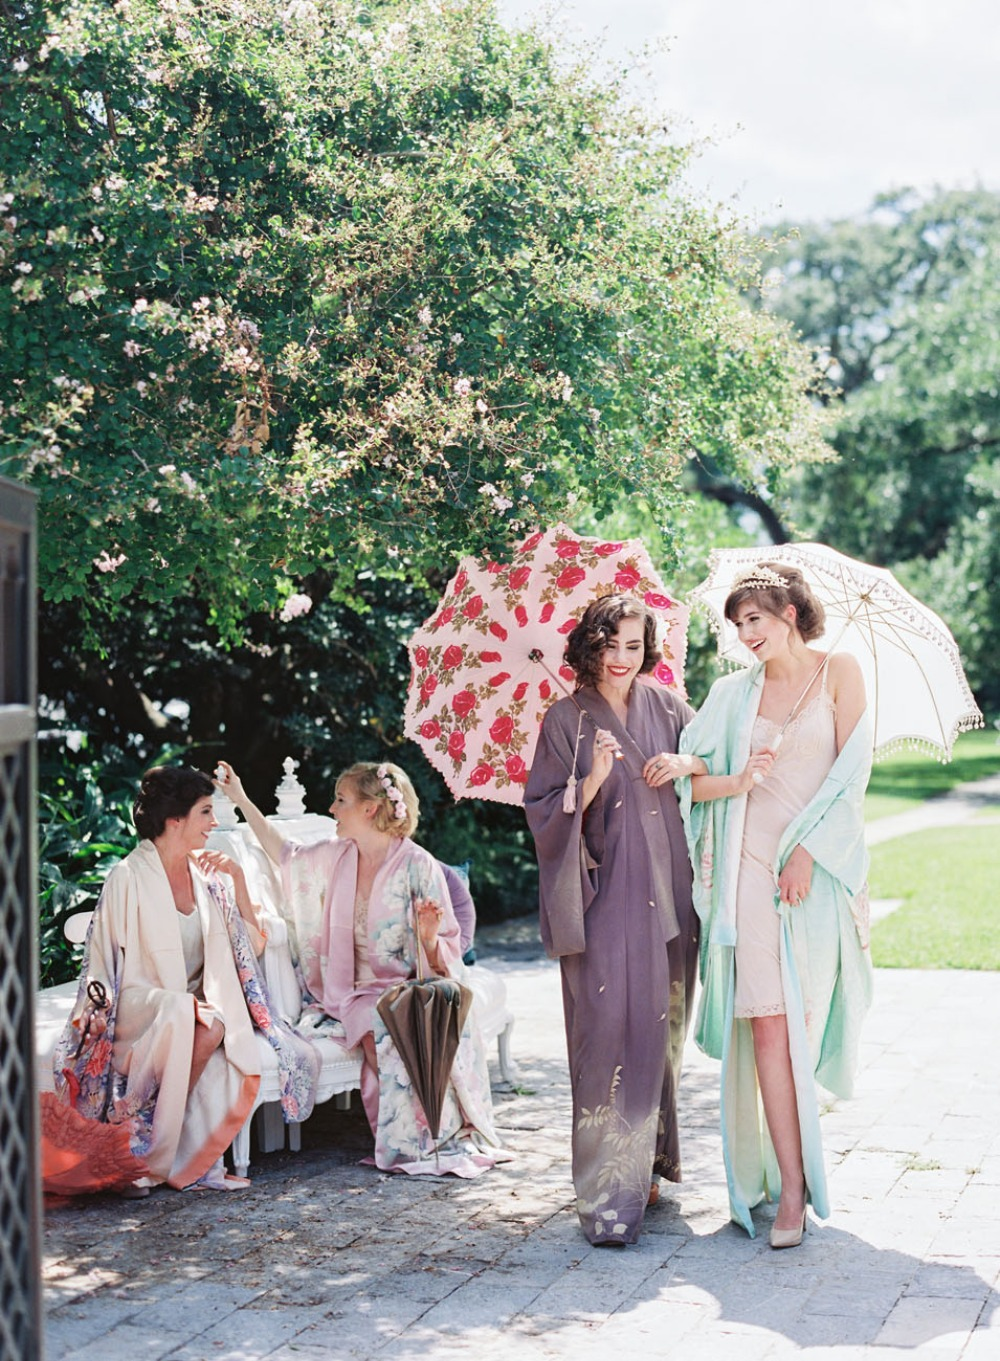 Silk robes and umbrellas